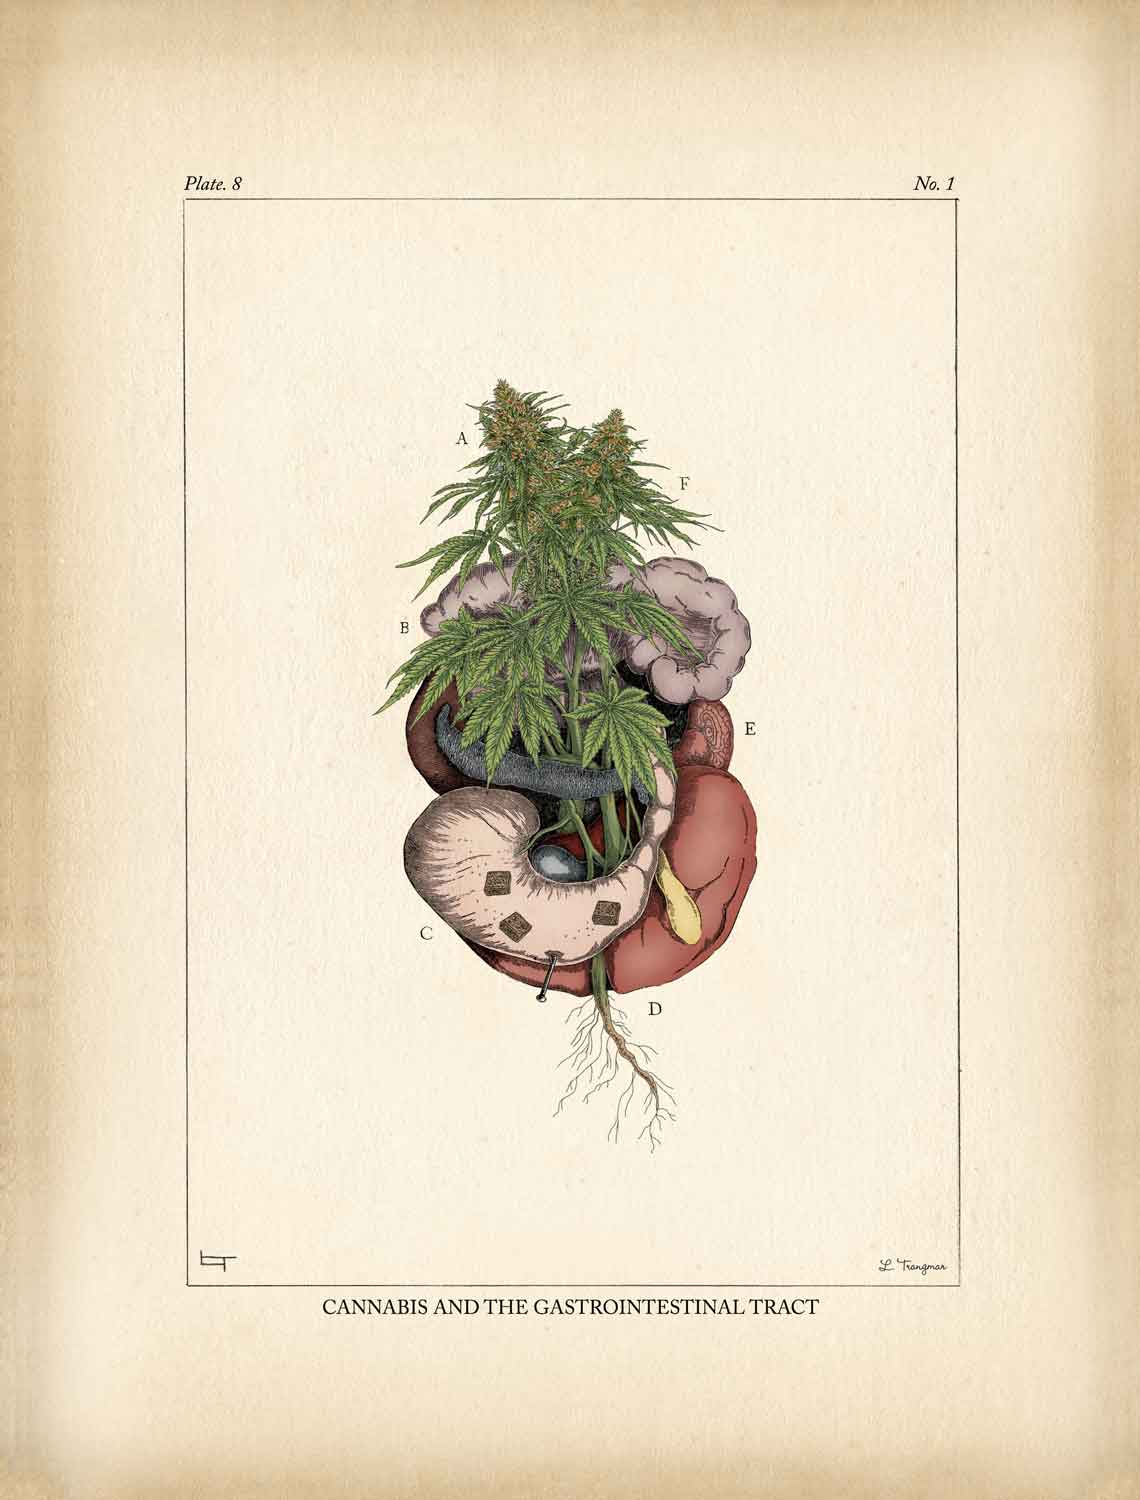 Cannabis and the Gastrointestinal Tract